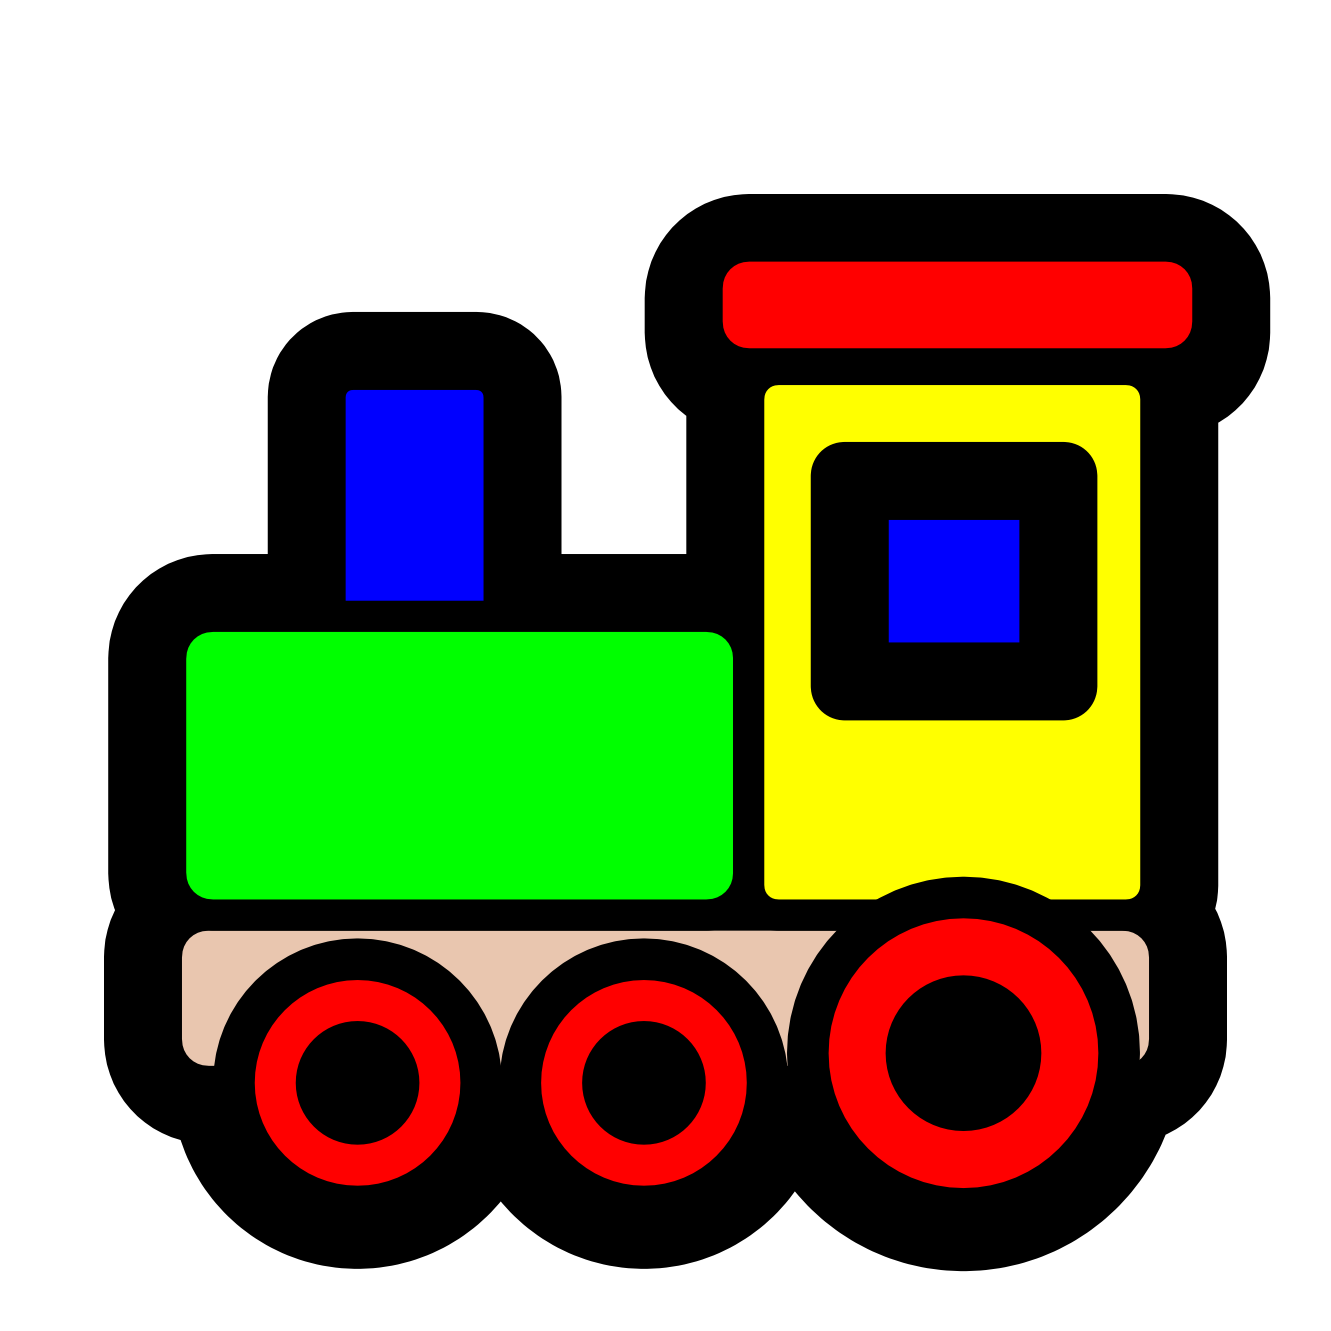 png freeuse stock Trains clipart. Toy panda free images